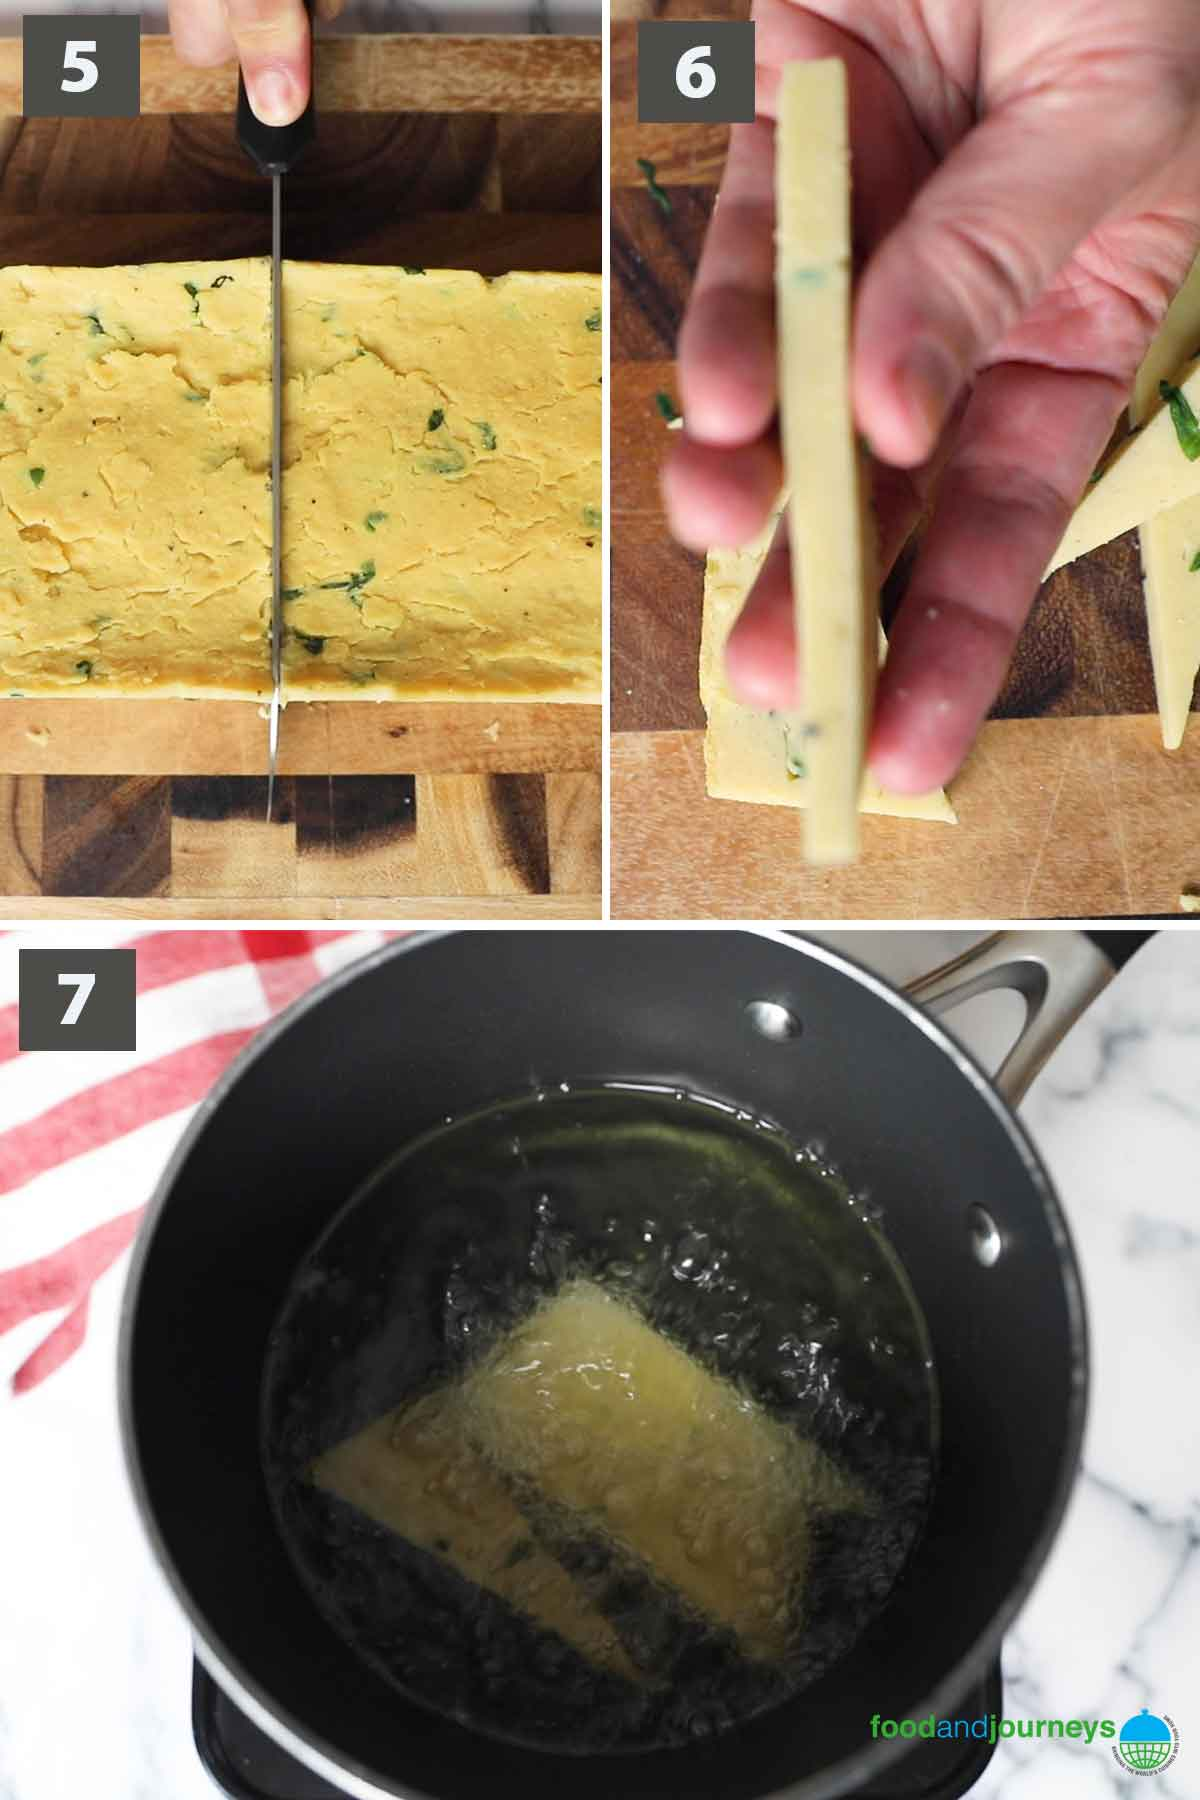 Second part of a collage of images showing the step by step process of making chickpea fritters at home.